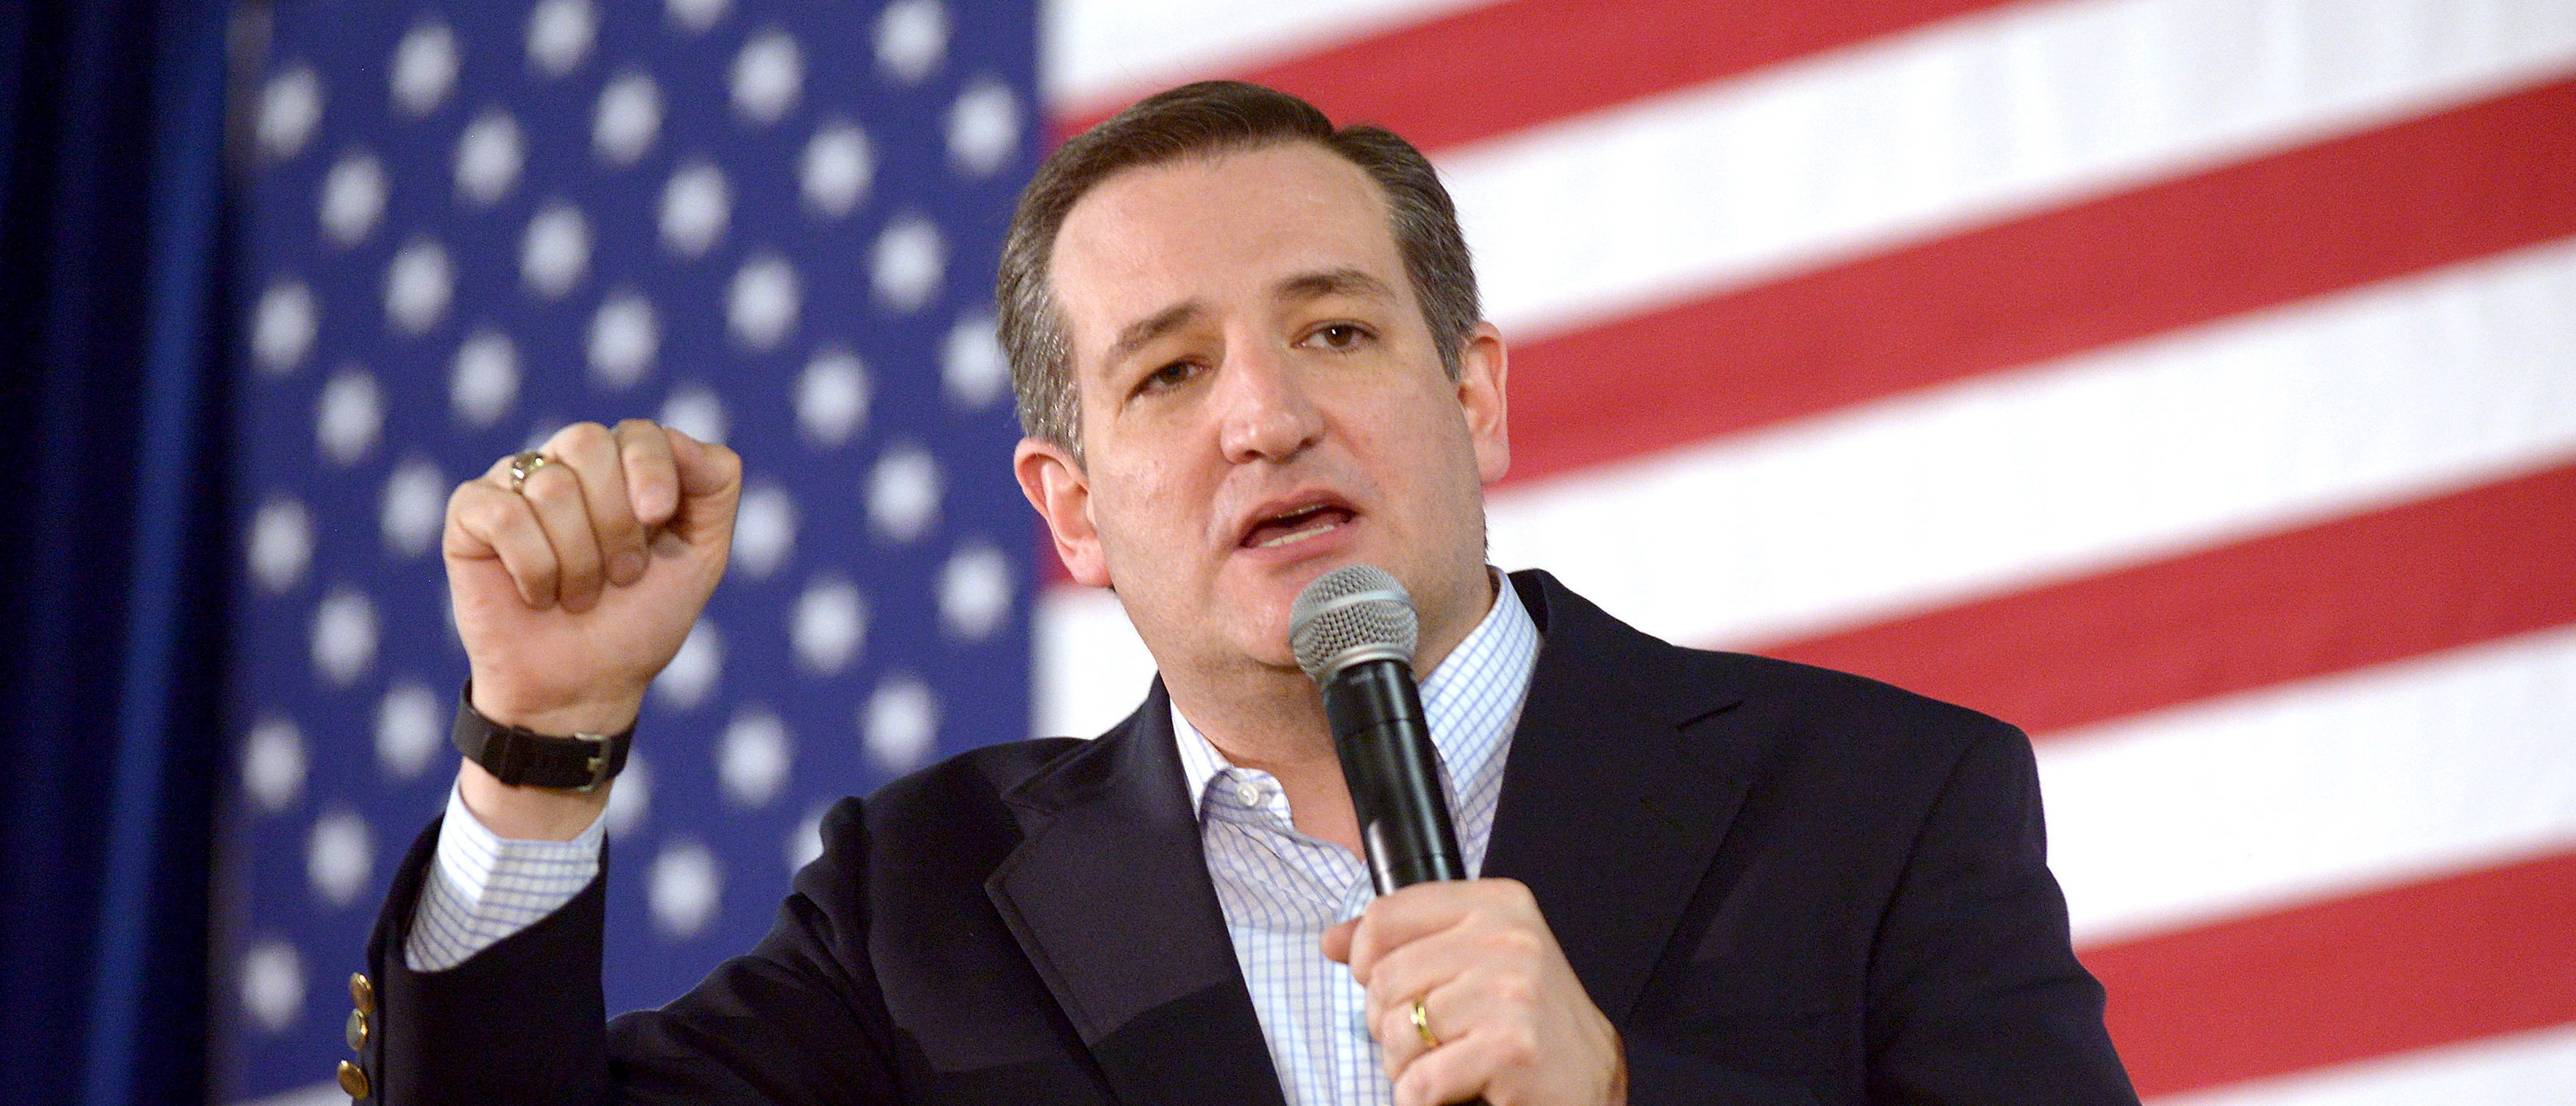 Republican Presidential candidate Ted Cruz speaks at a rally at the Boys and Girls Club of Truckee Meadows in Reno, Nevada February 22, 2016. REUTERS/James Glover II